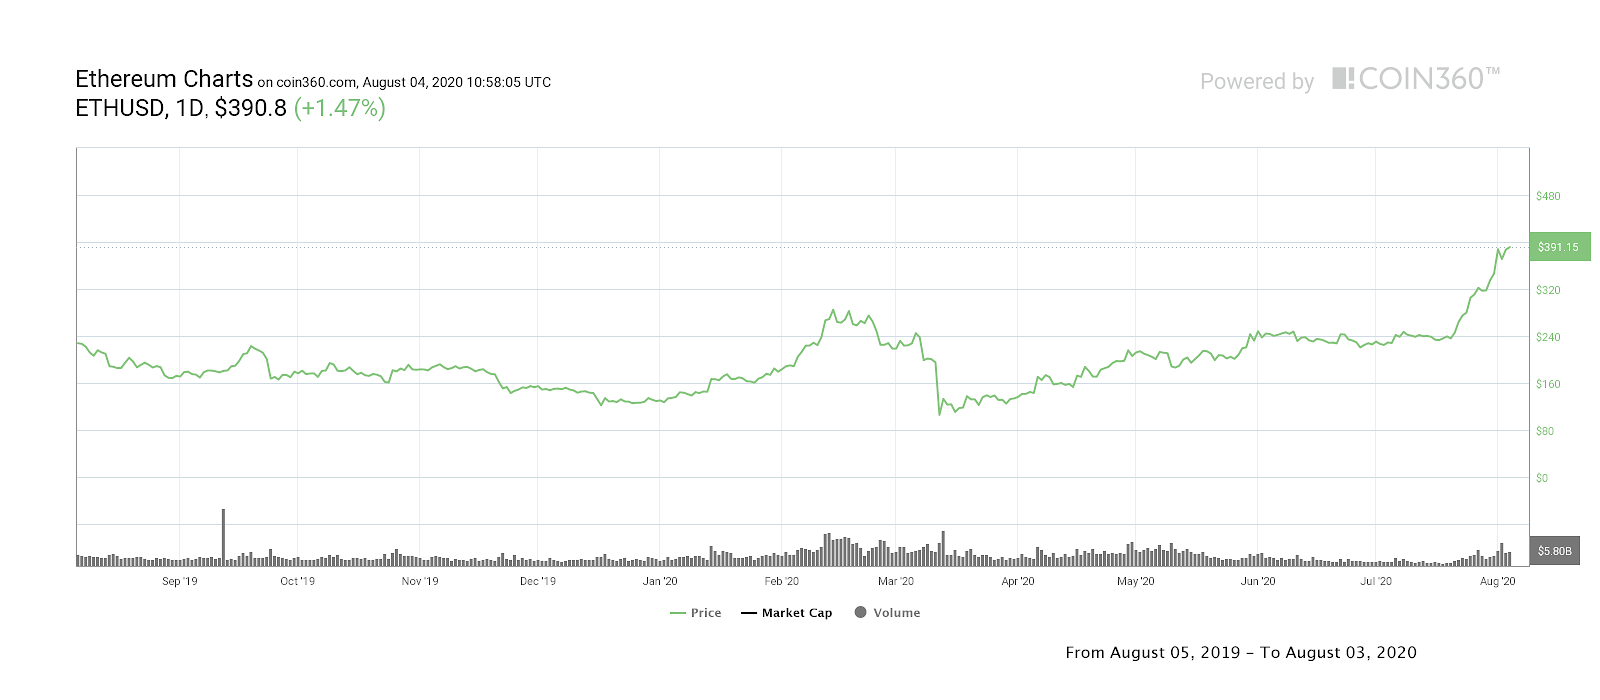 Ether one-year price chart